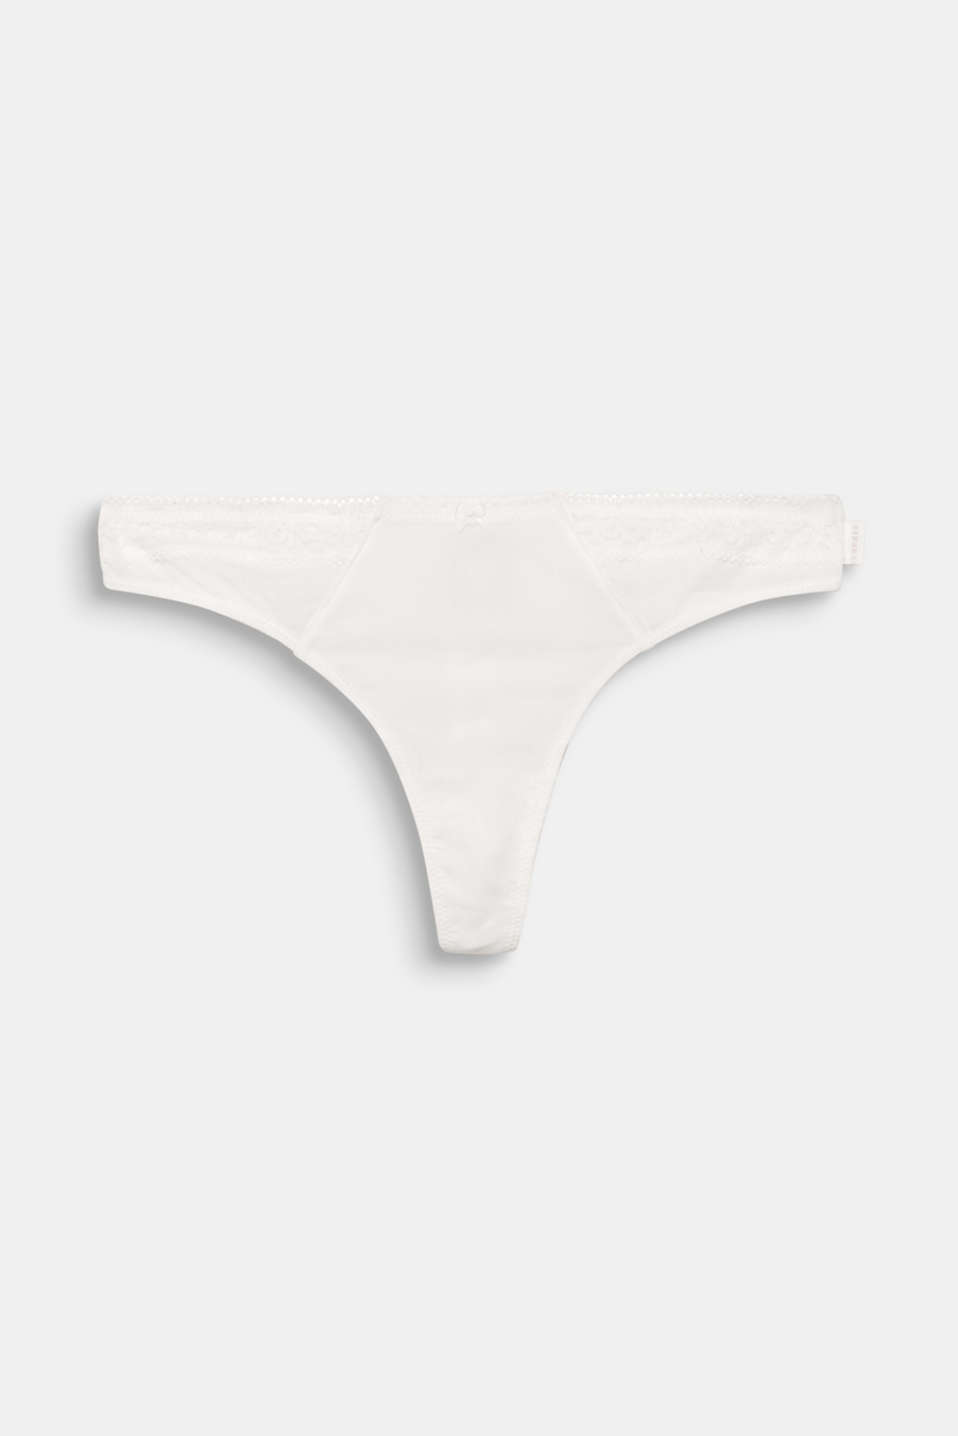 CASSIA collection - delicate, fine textured microfibre and the floral lace trim give this hipster thong its ultra feminine look!